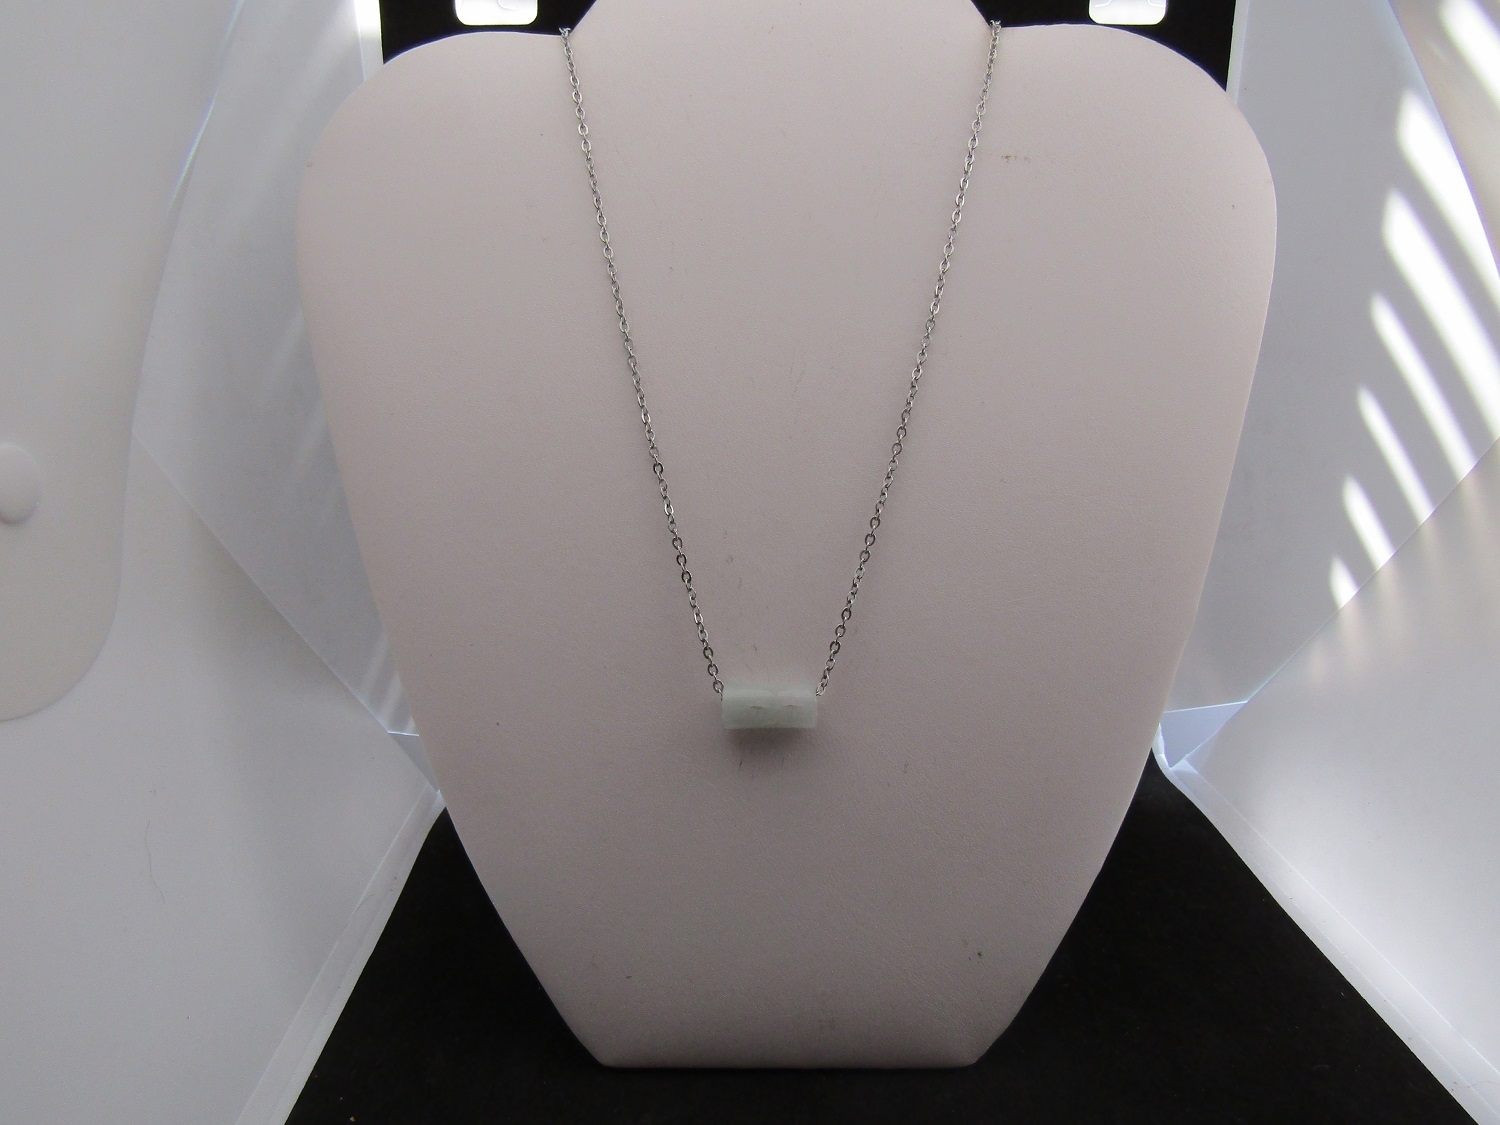 Jade Stainless Steel Chain Necklace